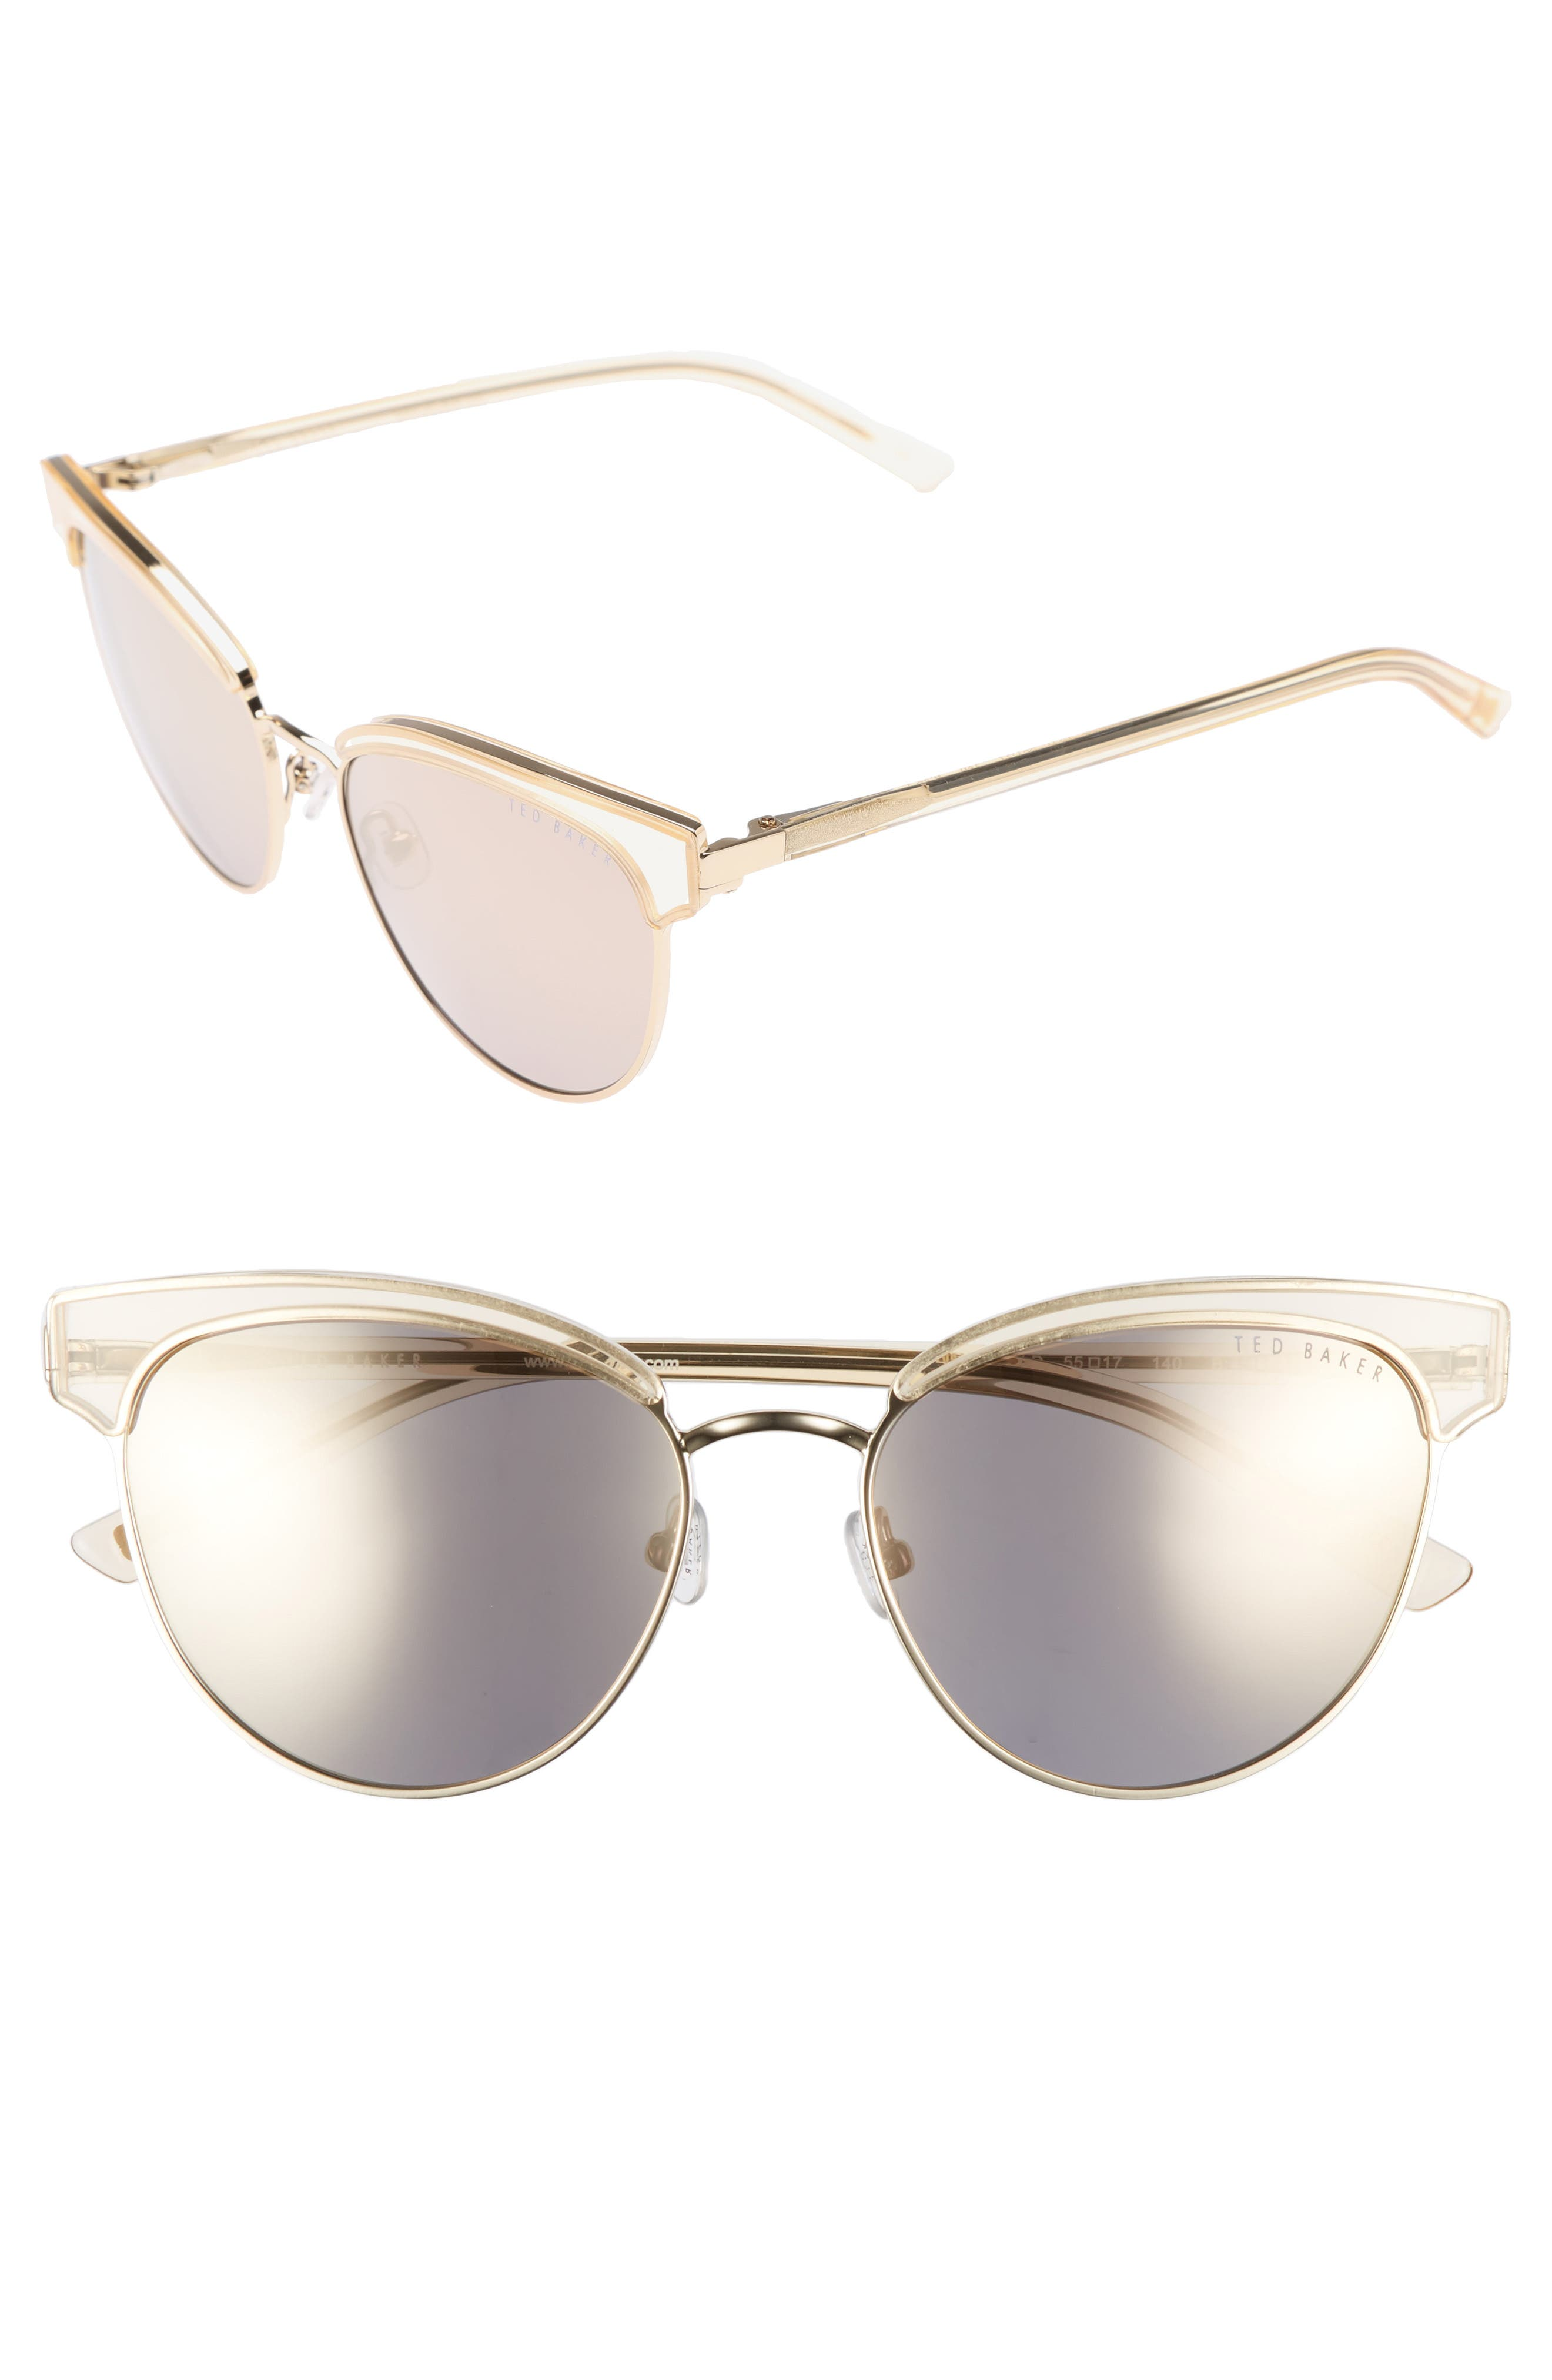 55mm Mirrored Semi Rimless Cat Eye Sunglasses,                         Main,                         color, Gold